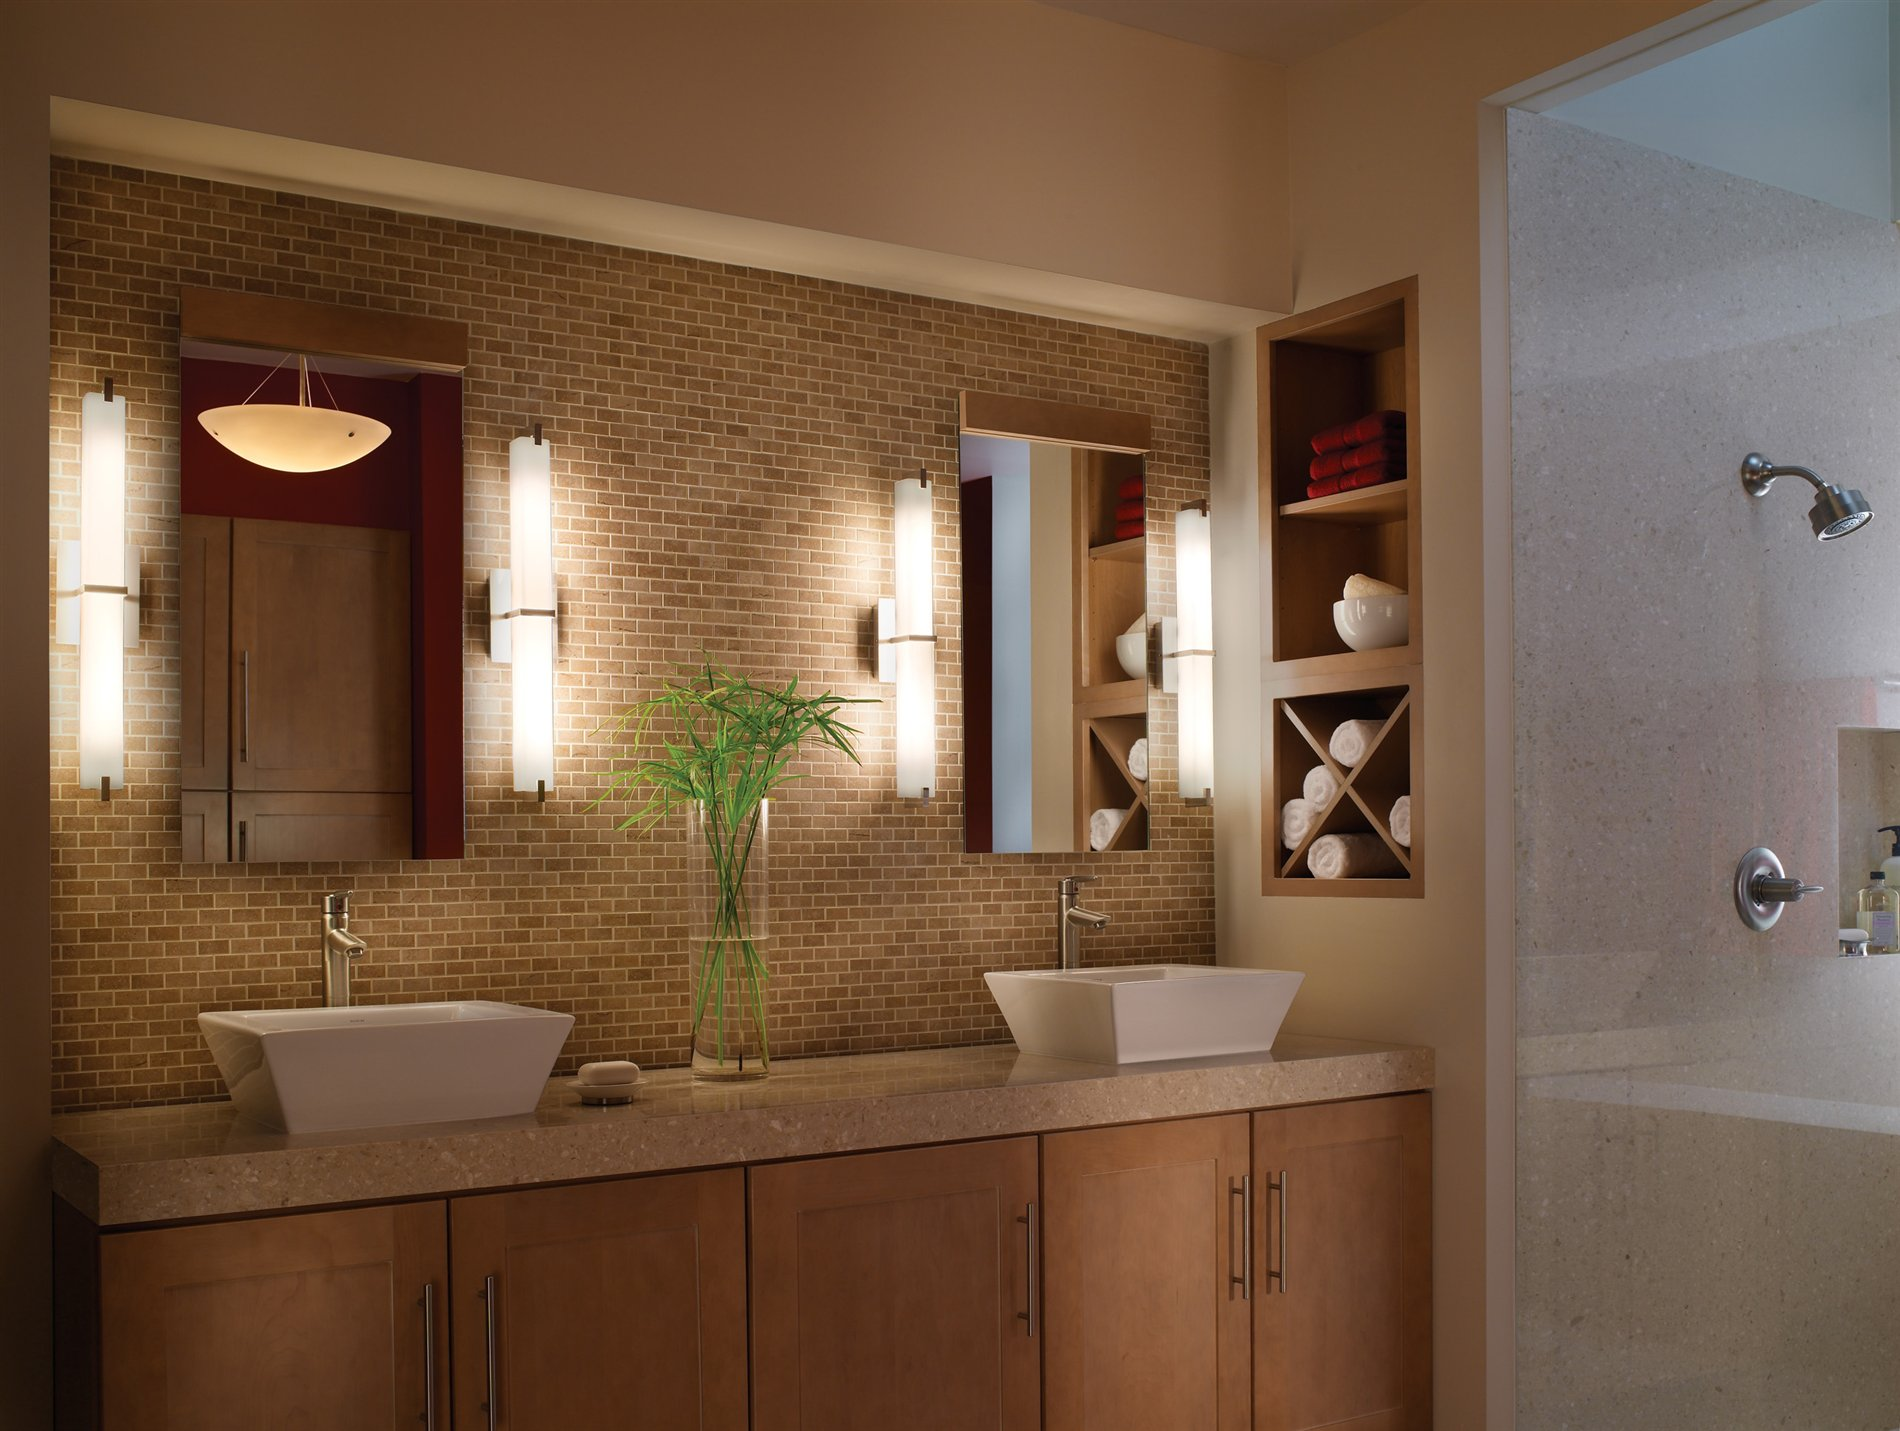 Vanity Lights For The Bathroom : Tech Lighting 700BCMET Metro Modern / Contemporary Bathroom / Vanity Light 700BCMET